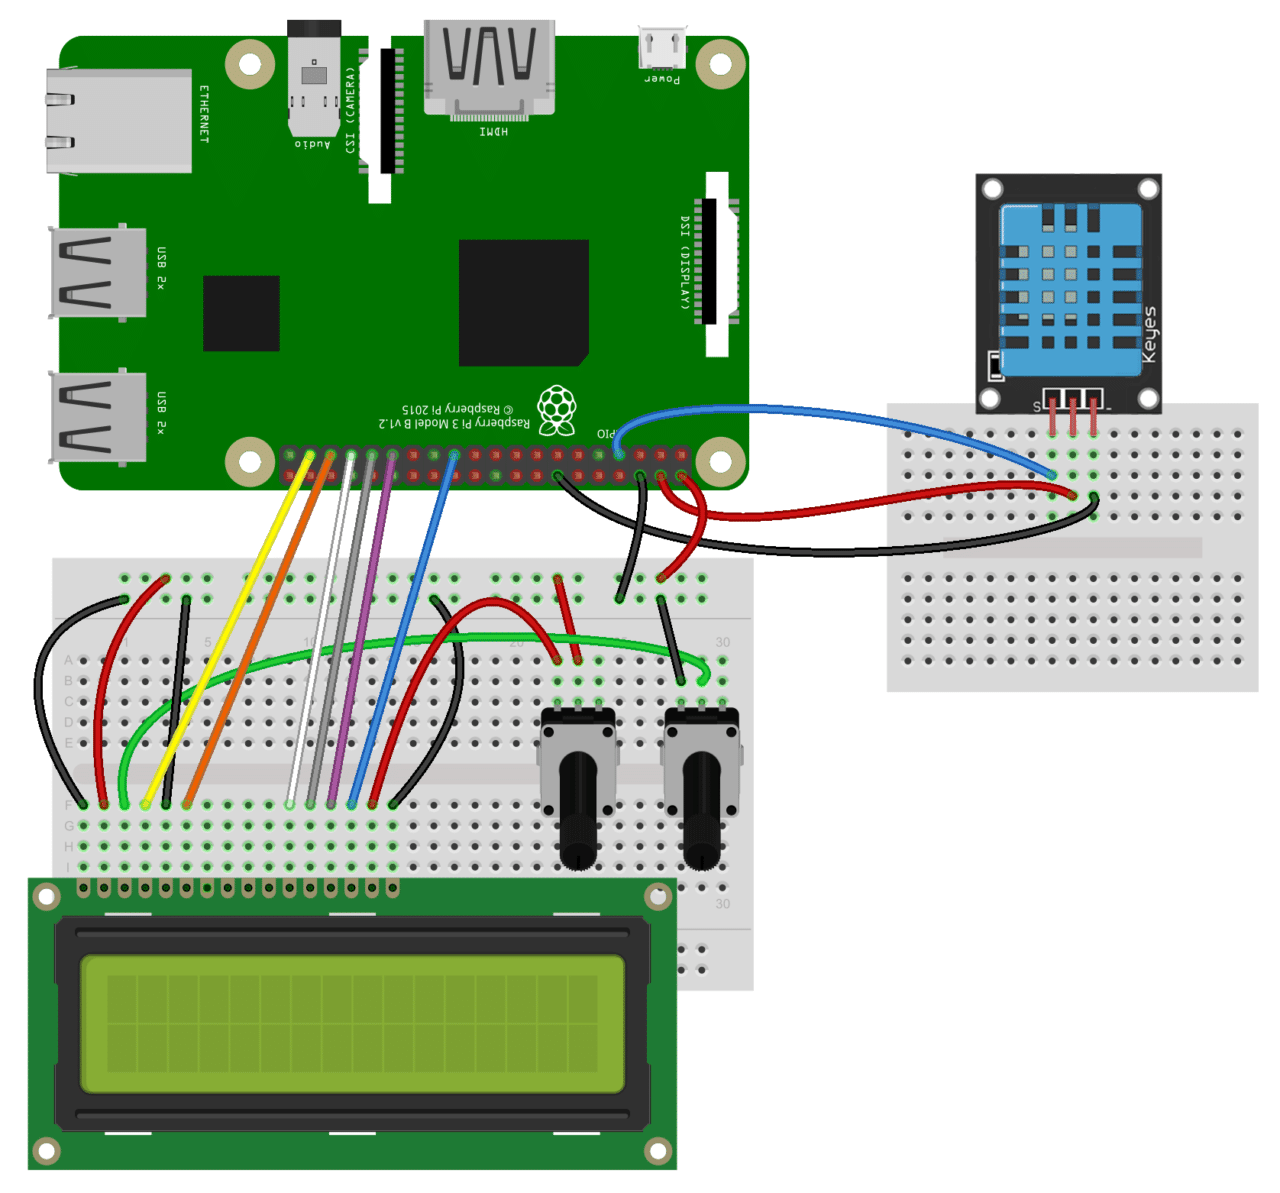 How To Set Up The Dht11 Humidity Sensor On Raspberry Pi Know Read Diagrams And Start Thinking About Building A Circuit Wiring For Lcd Output